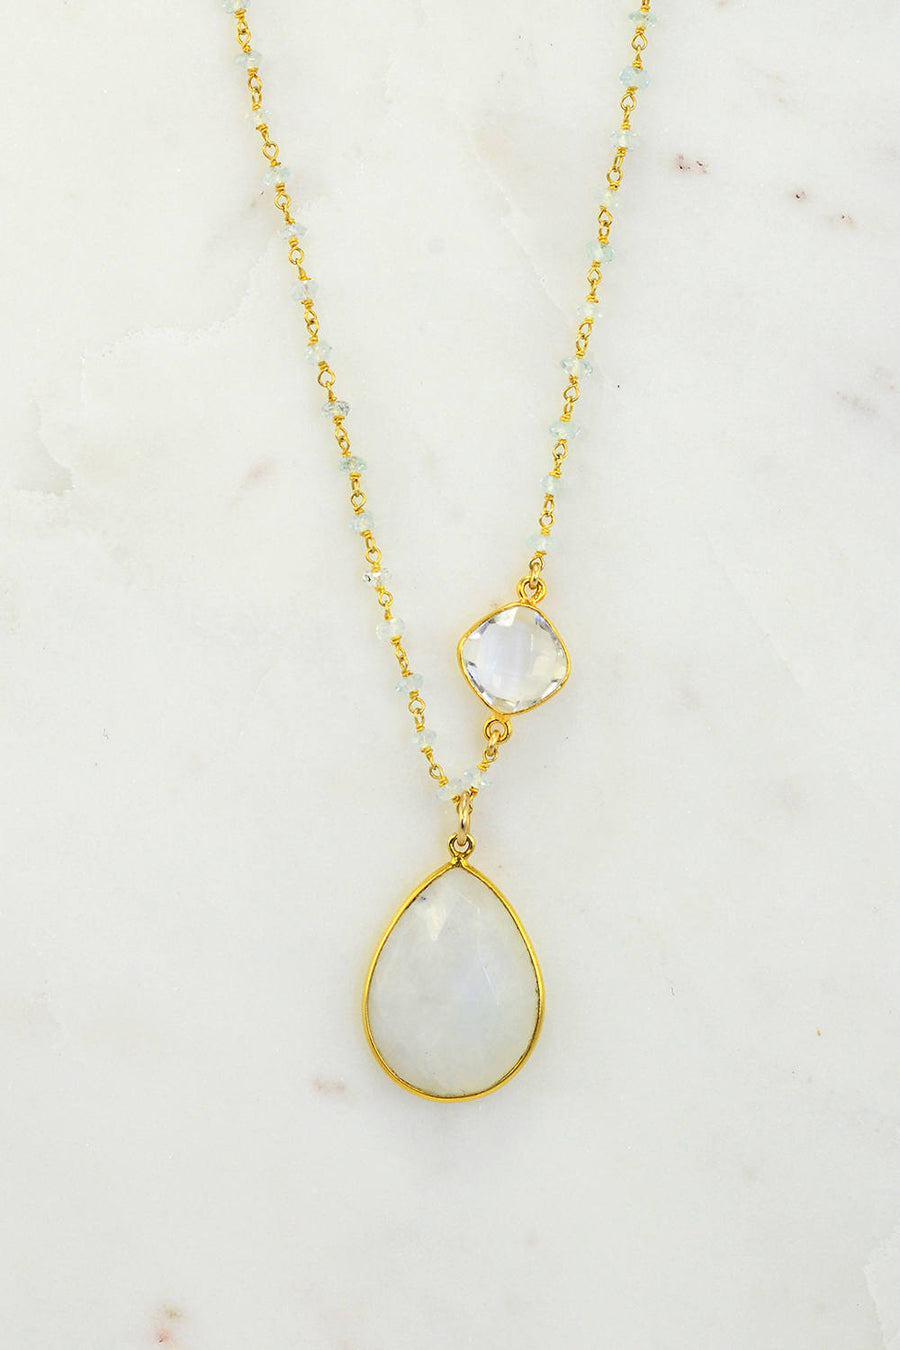 Moonstone Necklace - Aqua Chalcedonyn Wire Wrapped Necklac -Gemstone Necklace - Bezel Set Necklace - Teardrop Necklace - Mommy Necklace